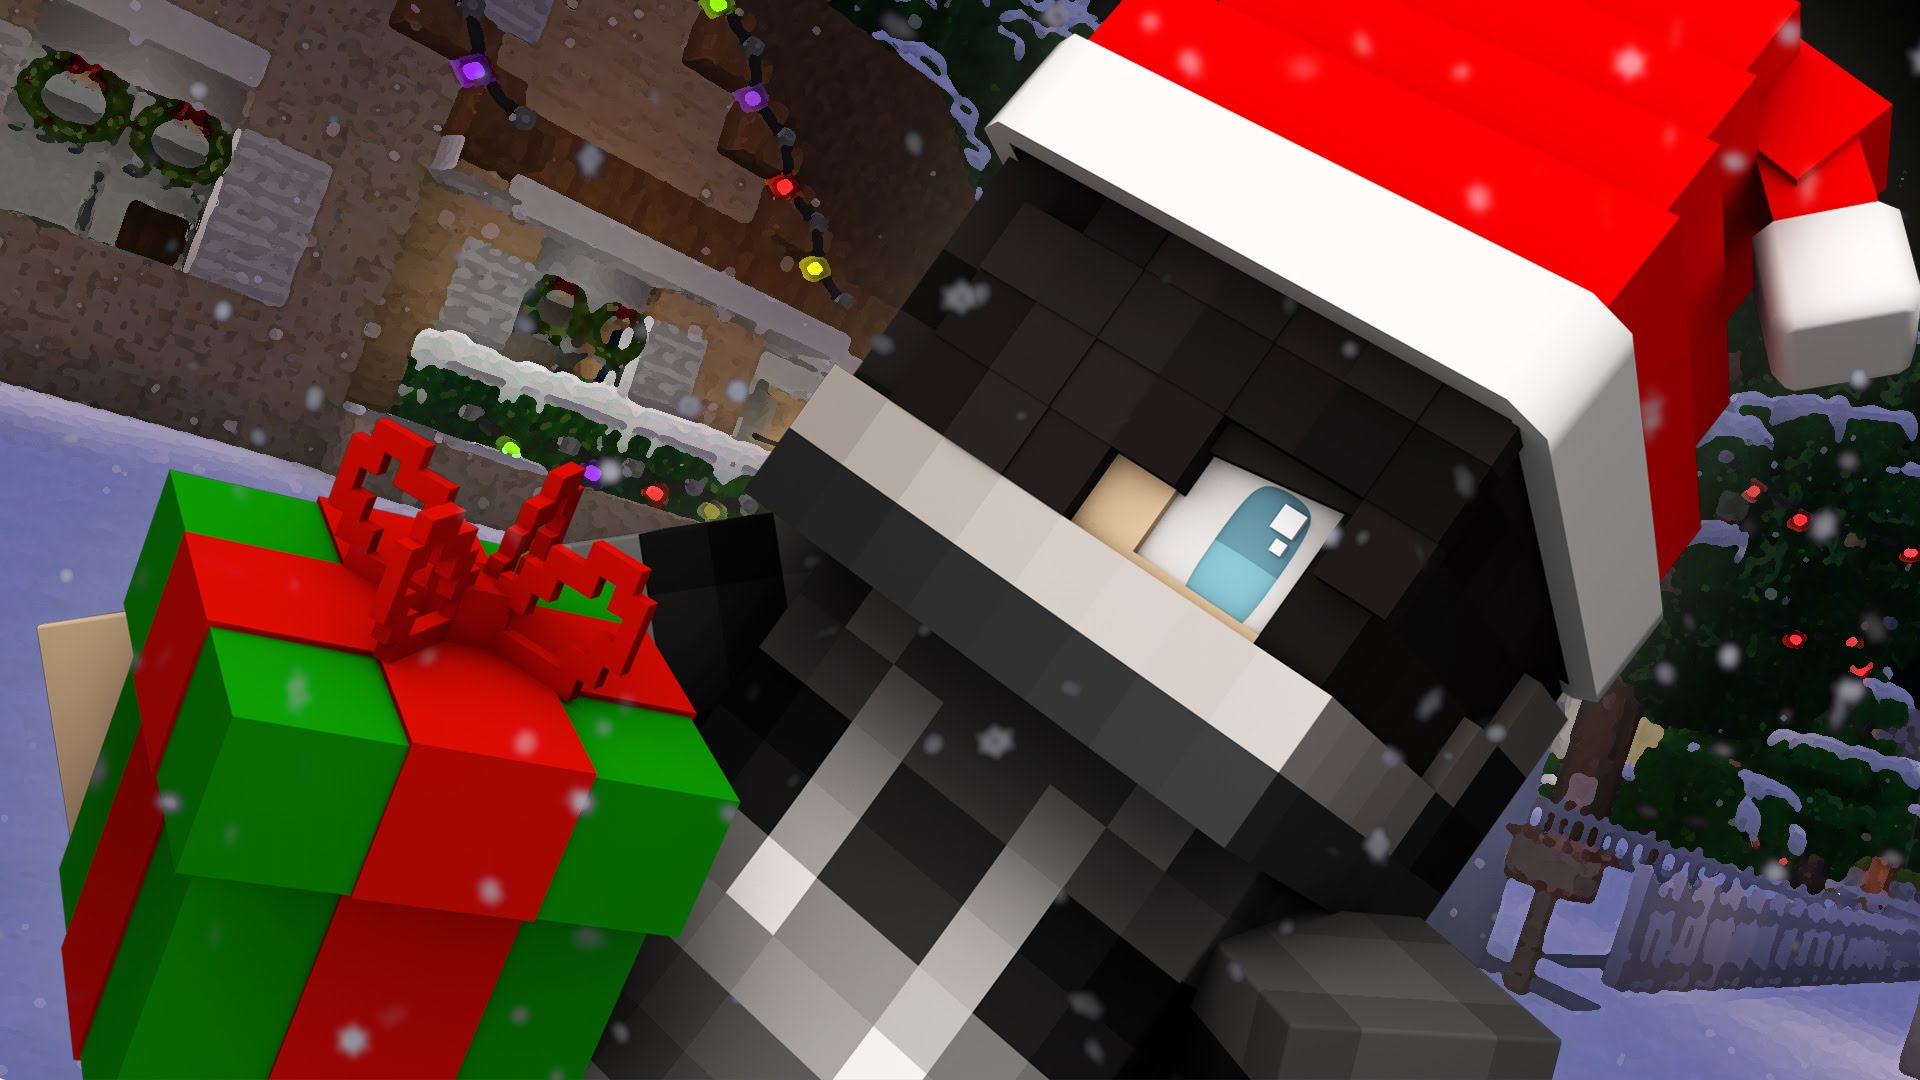 Wonderful Wallpaper Minecraft Aaron - ea552916-132d-4af7-88c7-739ded9fc2a8  Perfect Image Reference_908062.jpg